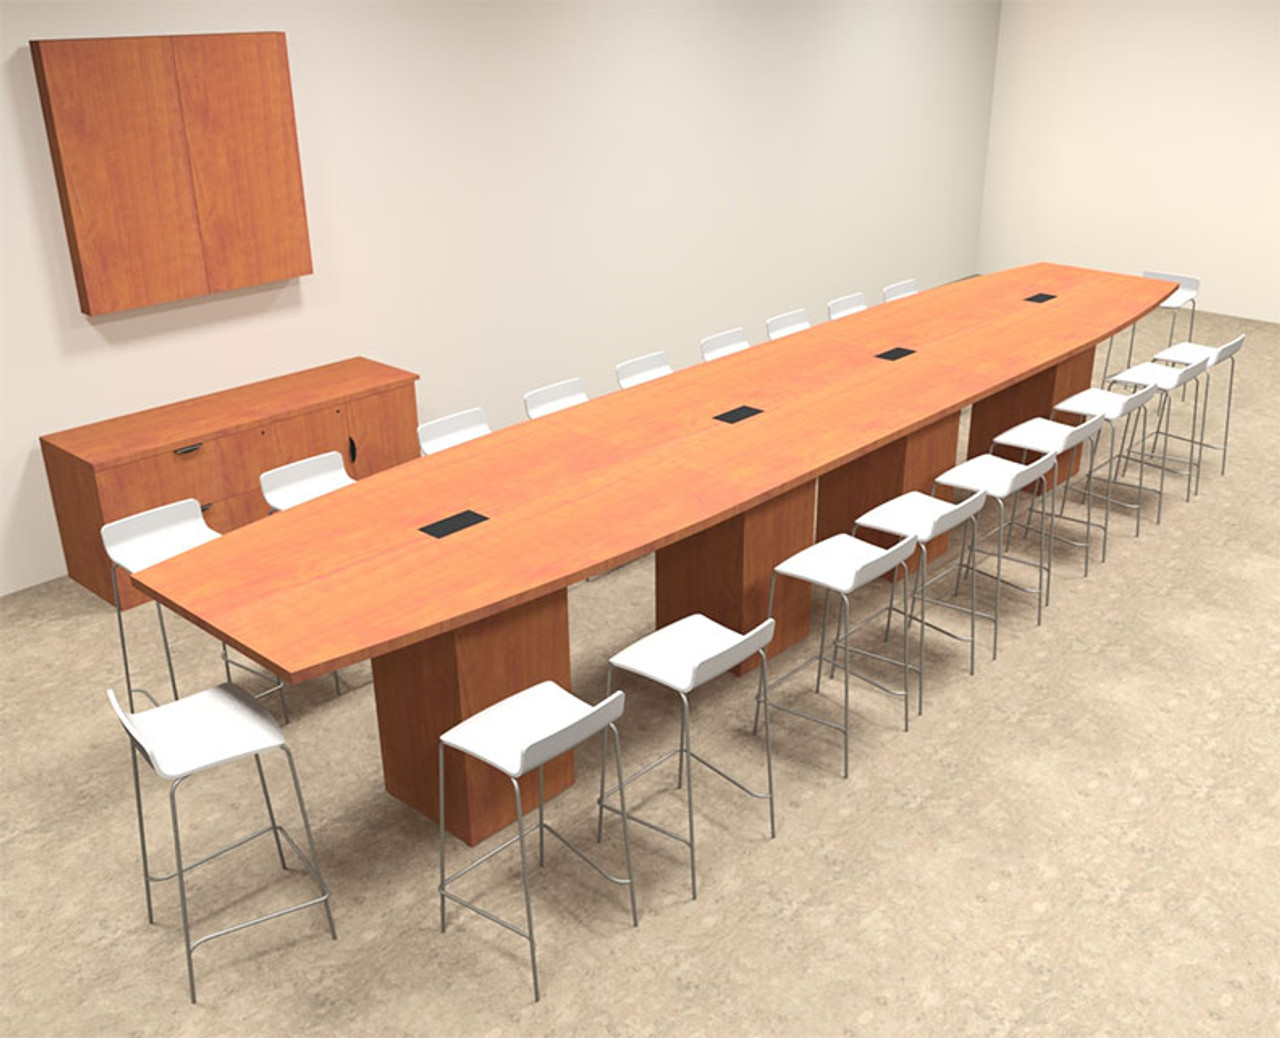 Boat Shape Counter Height Feet Conference Table OFCONCT - 20 foot conference table